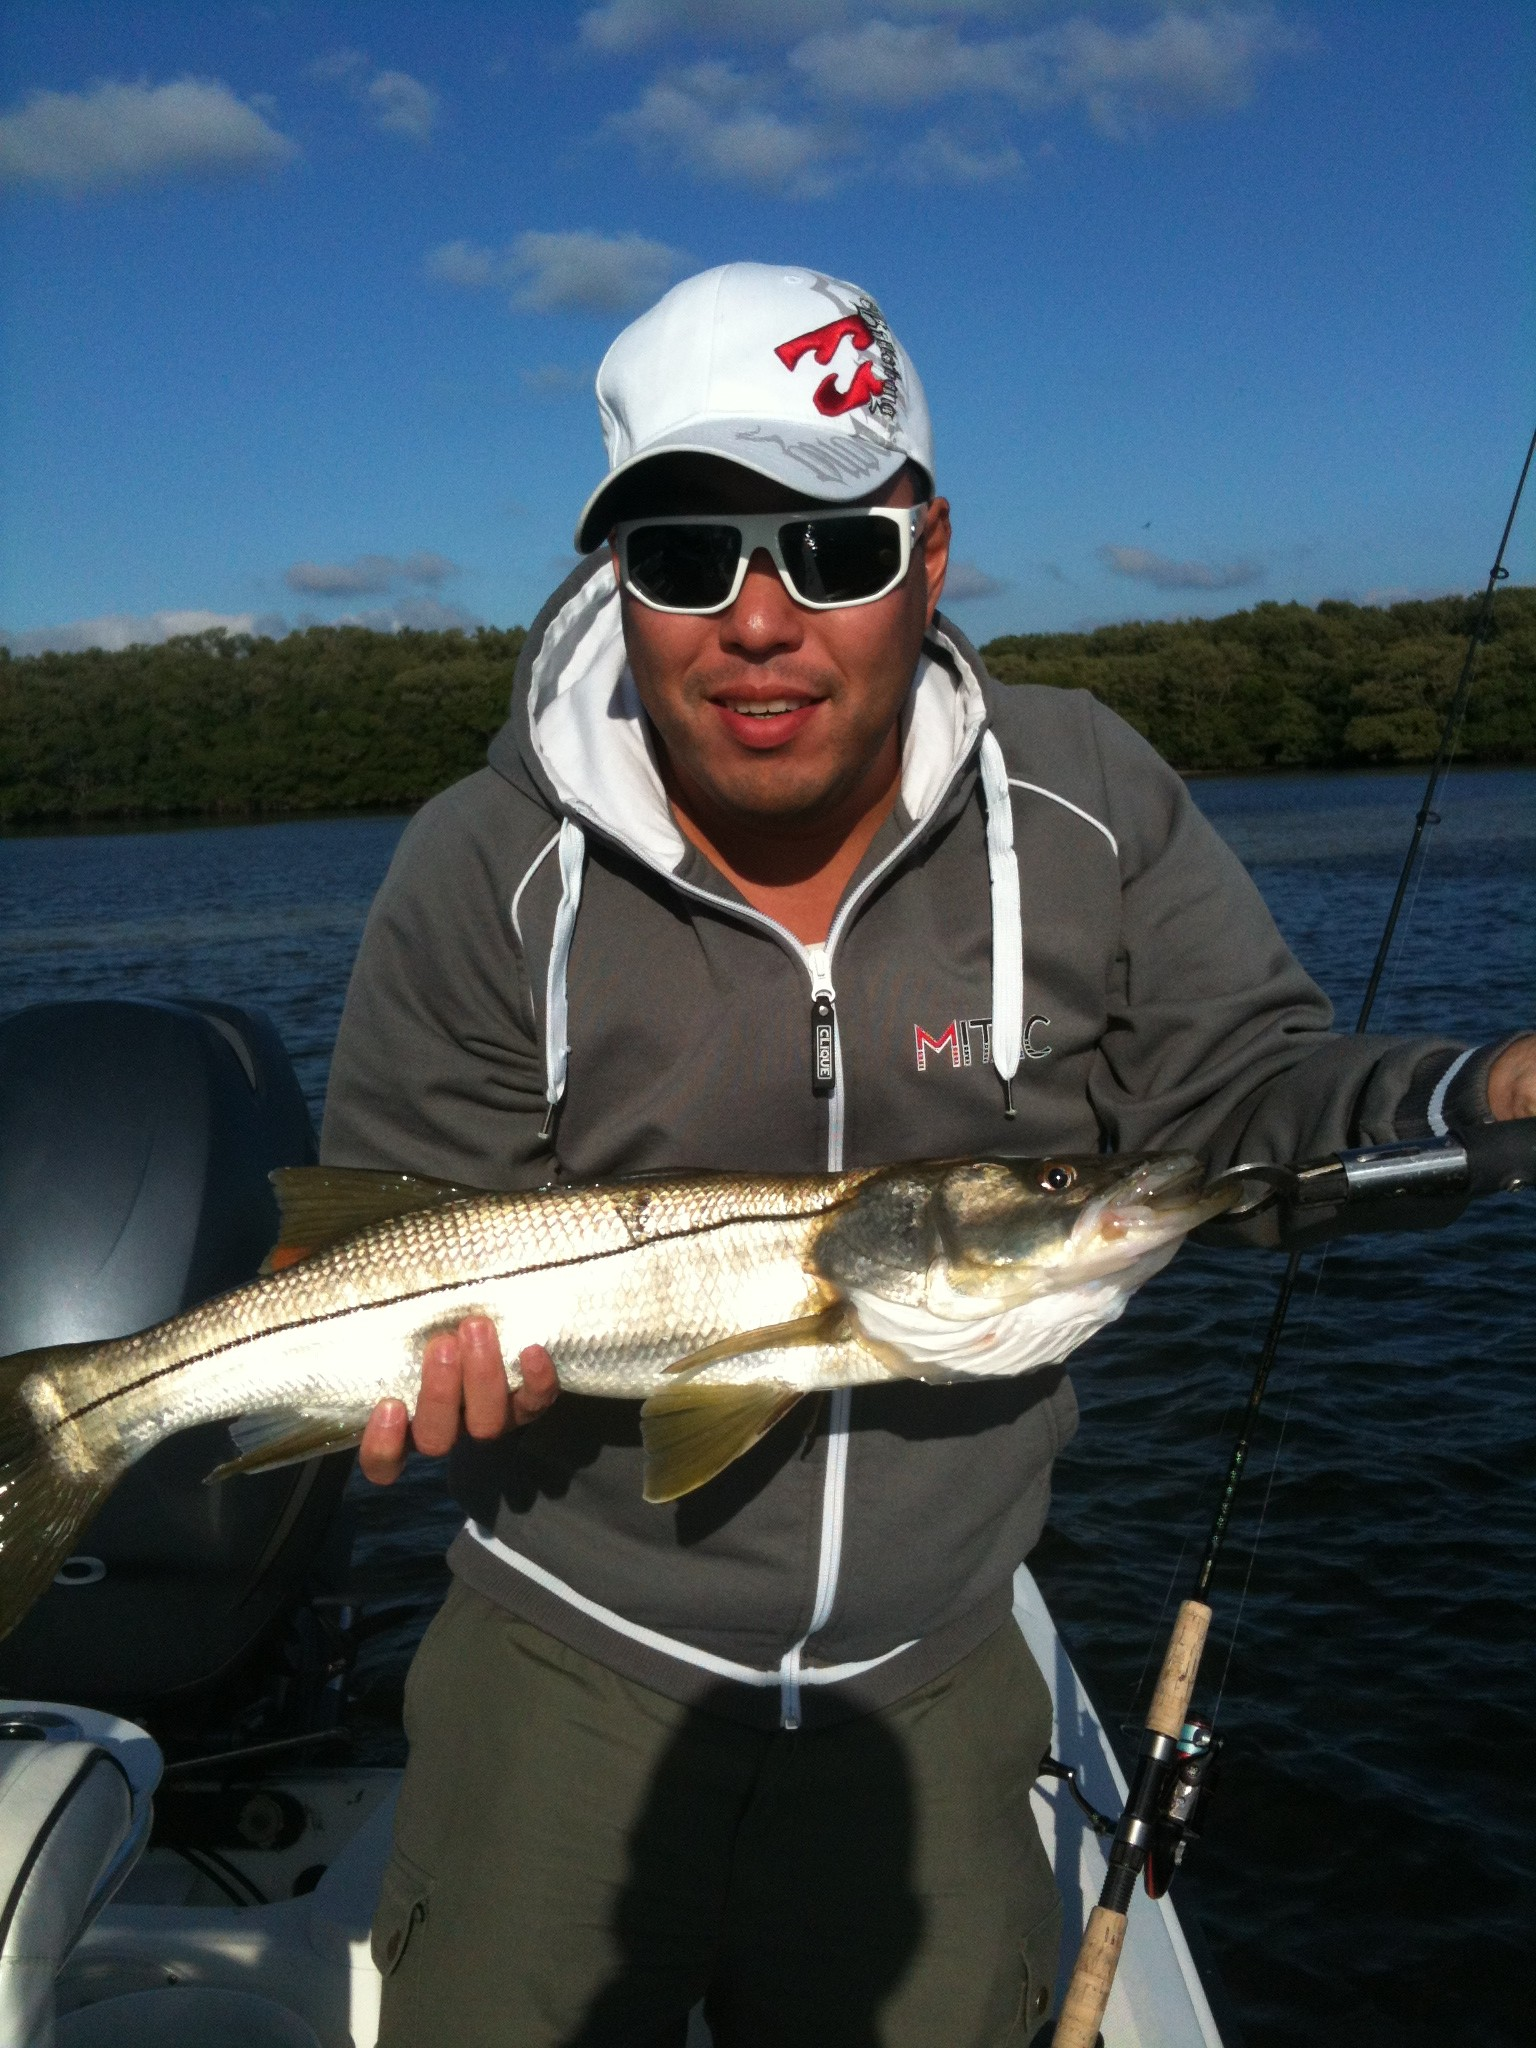 Fishing charters tampa florida for Fishing charters tampa